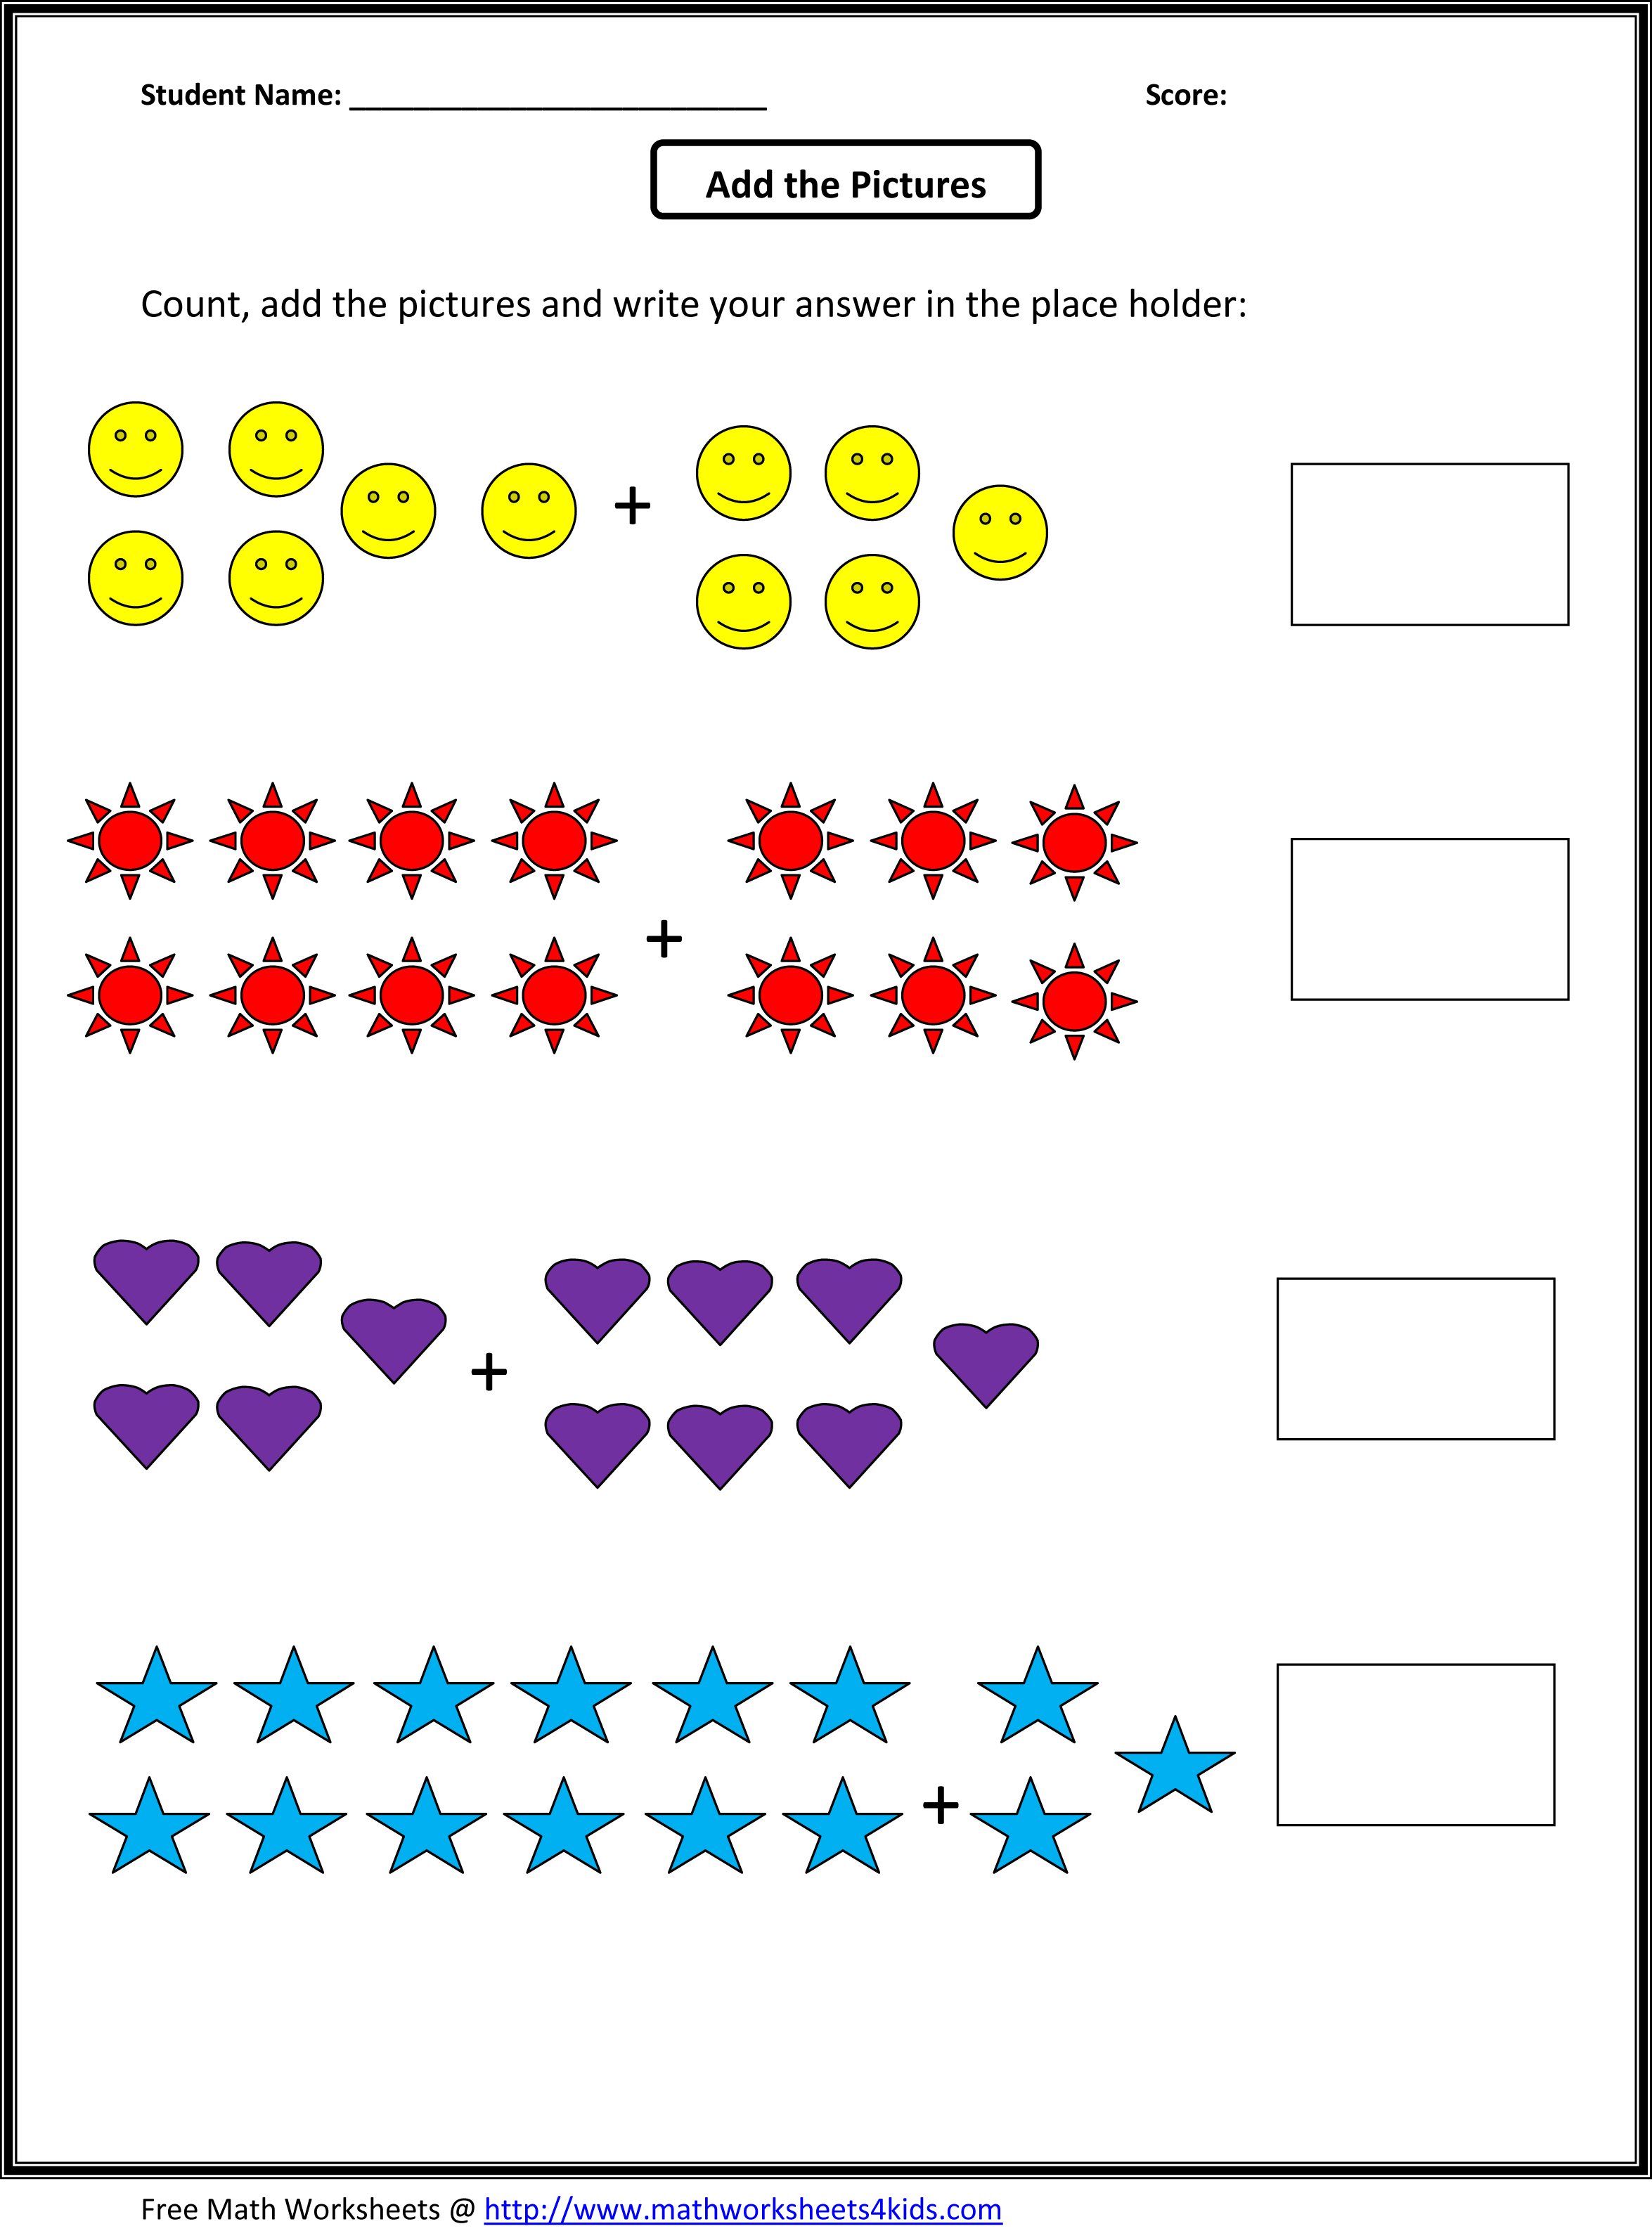 Weirdmailus  Unique Grade  Maths Worksheet  Reocurent With Likable Math Worksheets For St Grade Free  Reocurent With Awesome Sudoku Blank Worksheets Also Rd Grade Math Test Prep Worksheets In Addition Counting Numbers Worksheets For Kindergarten And Step  Al Anon Worksheet As Well As Free Printable Name Handwriting Worksheets Additionally Map Worksheets For Kids From Reocurentcom With Weirdmailus  Likable Grade  Maths Worksheet  Reocurent With Awesome Math Worksheets For St Grade Free  Reocurent And Unique Sudoku Blank Worksheets Also Rd Grade Math Test Prep Worksheets In Addition Counting Numbers Worksheets For Kindergarten From Reocurentcom